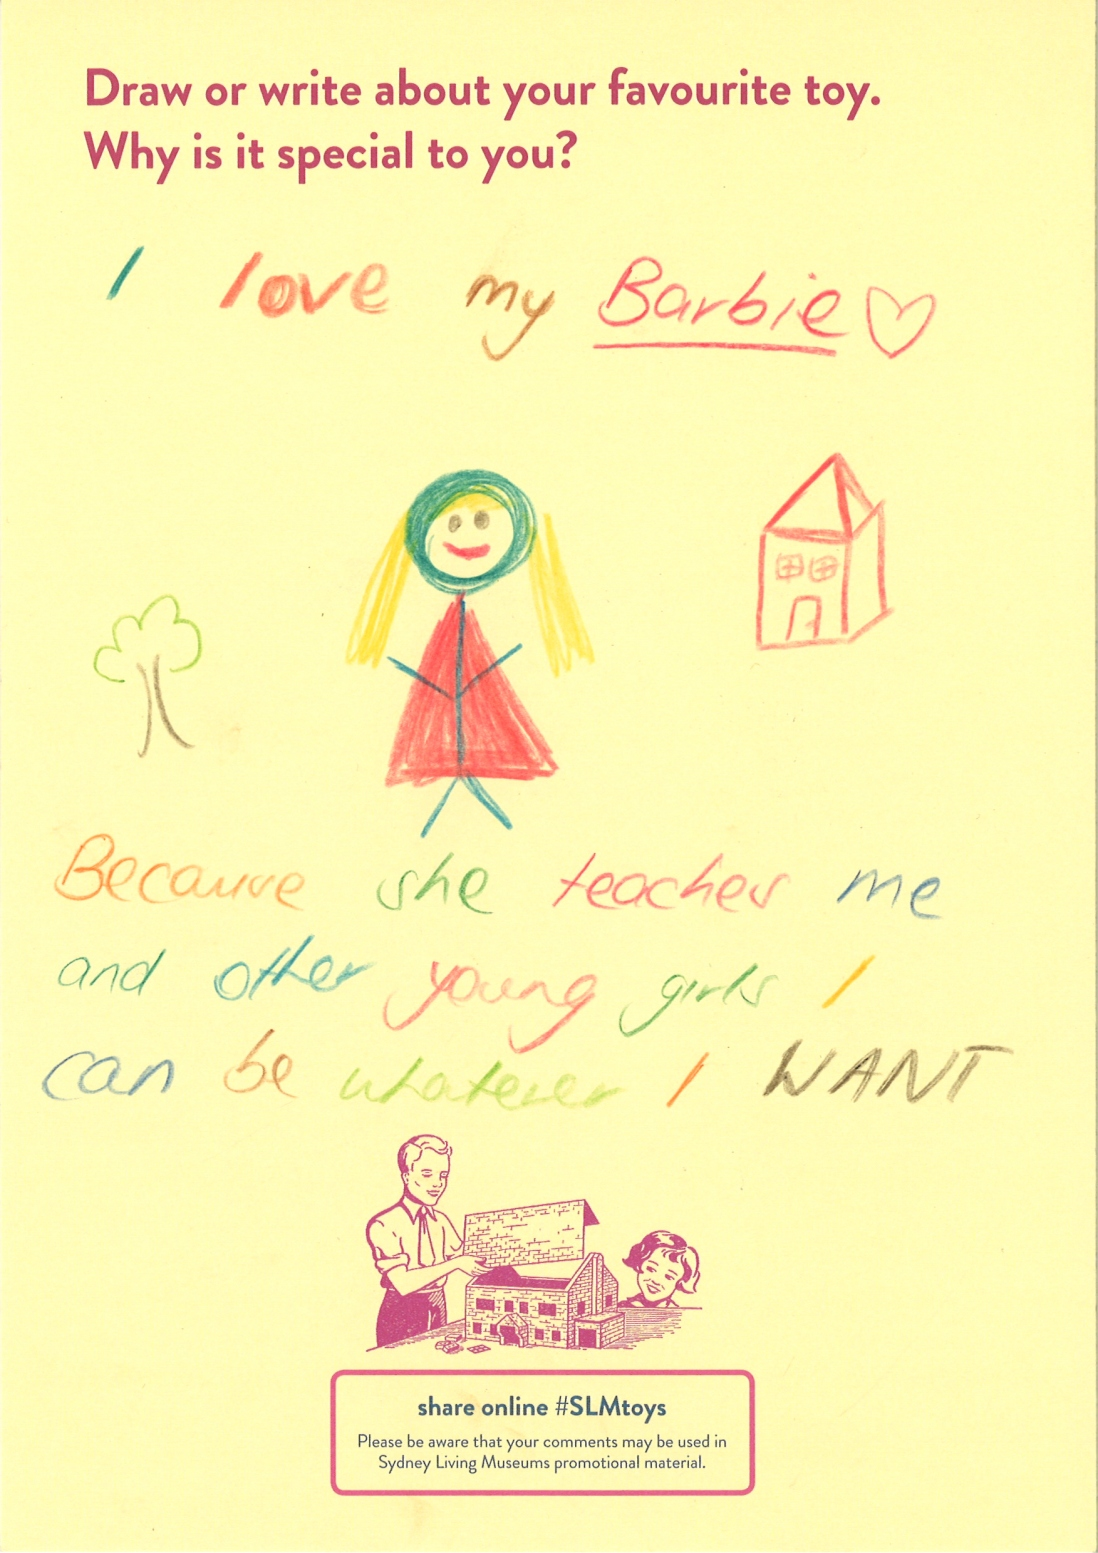 This is a drawing of a Barbie with a hand written story